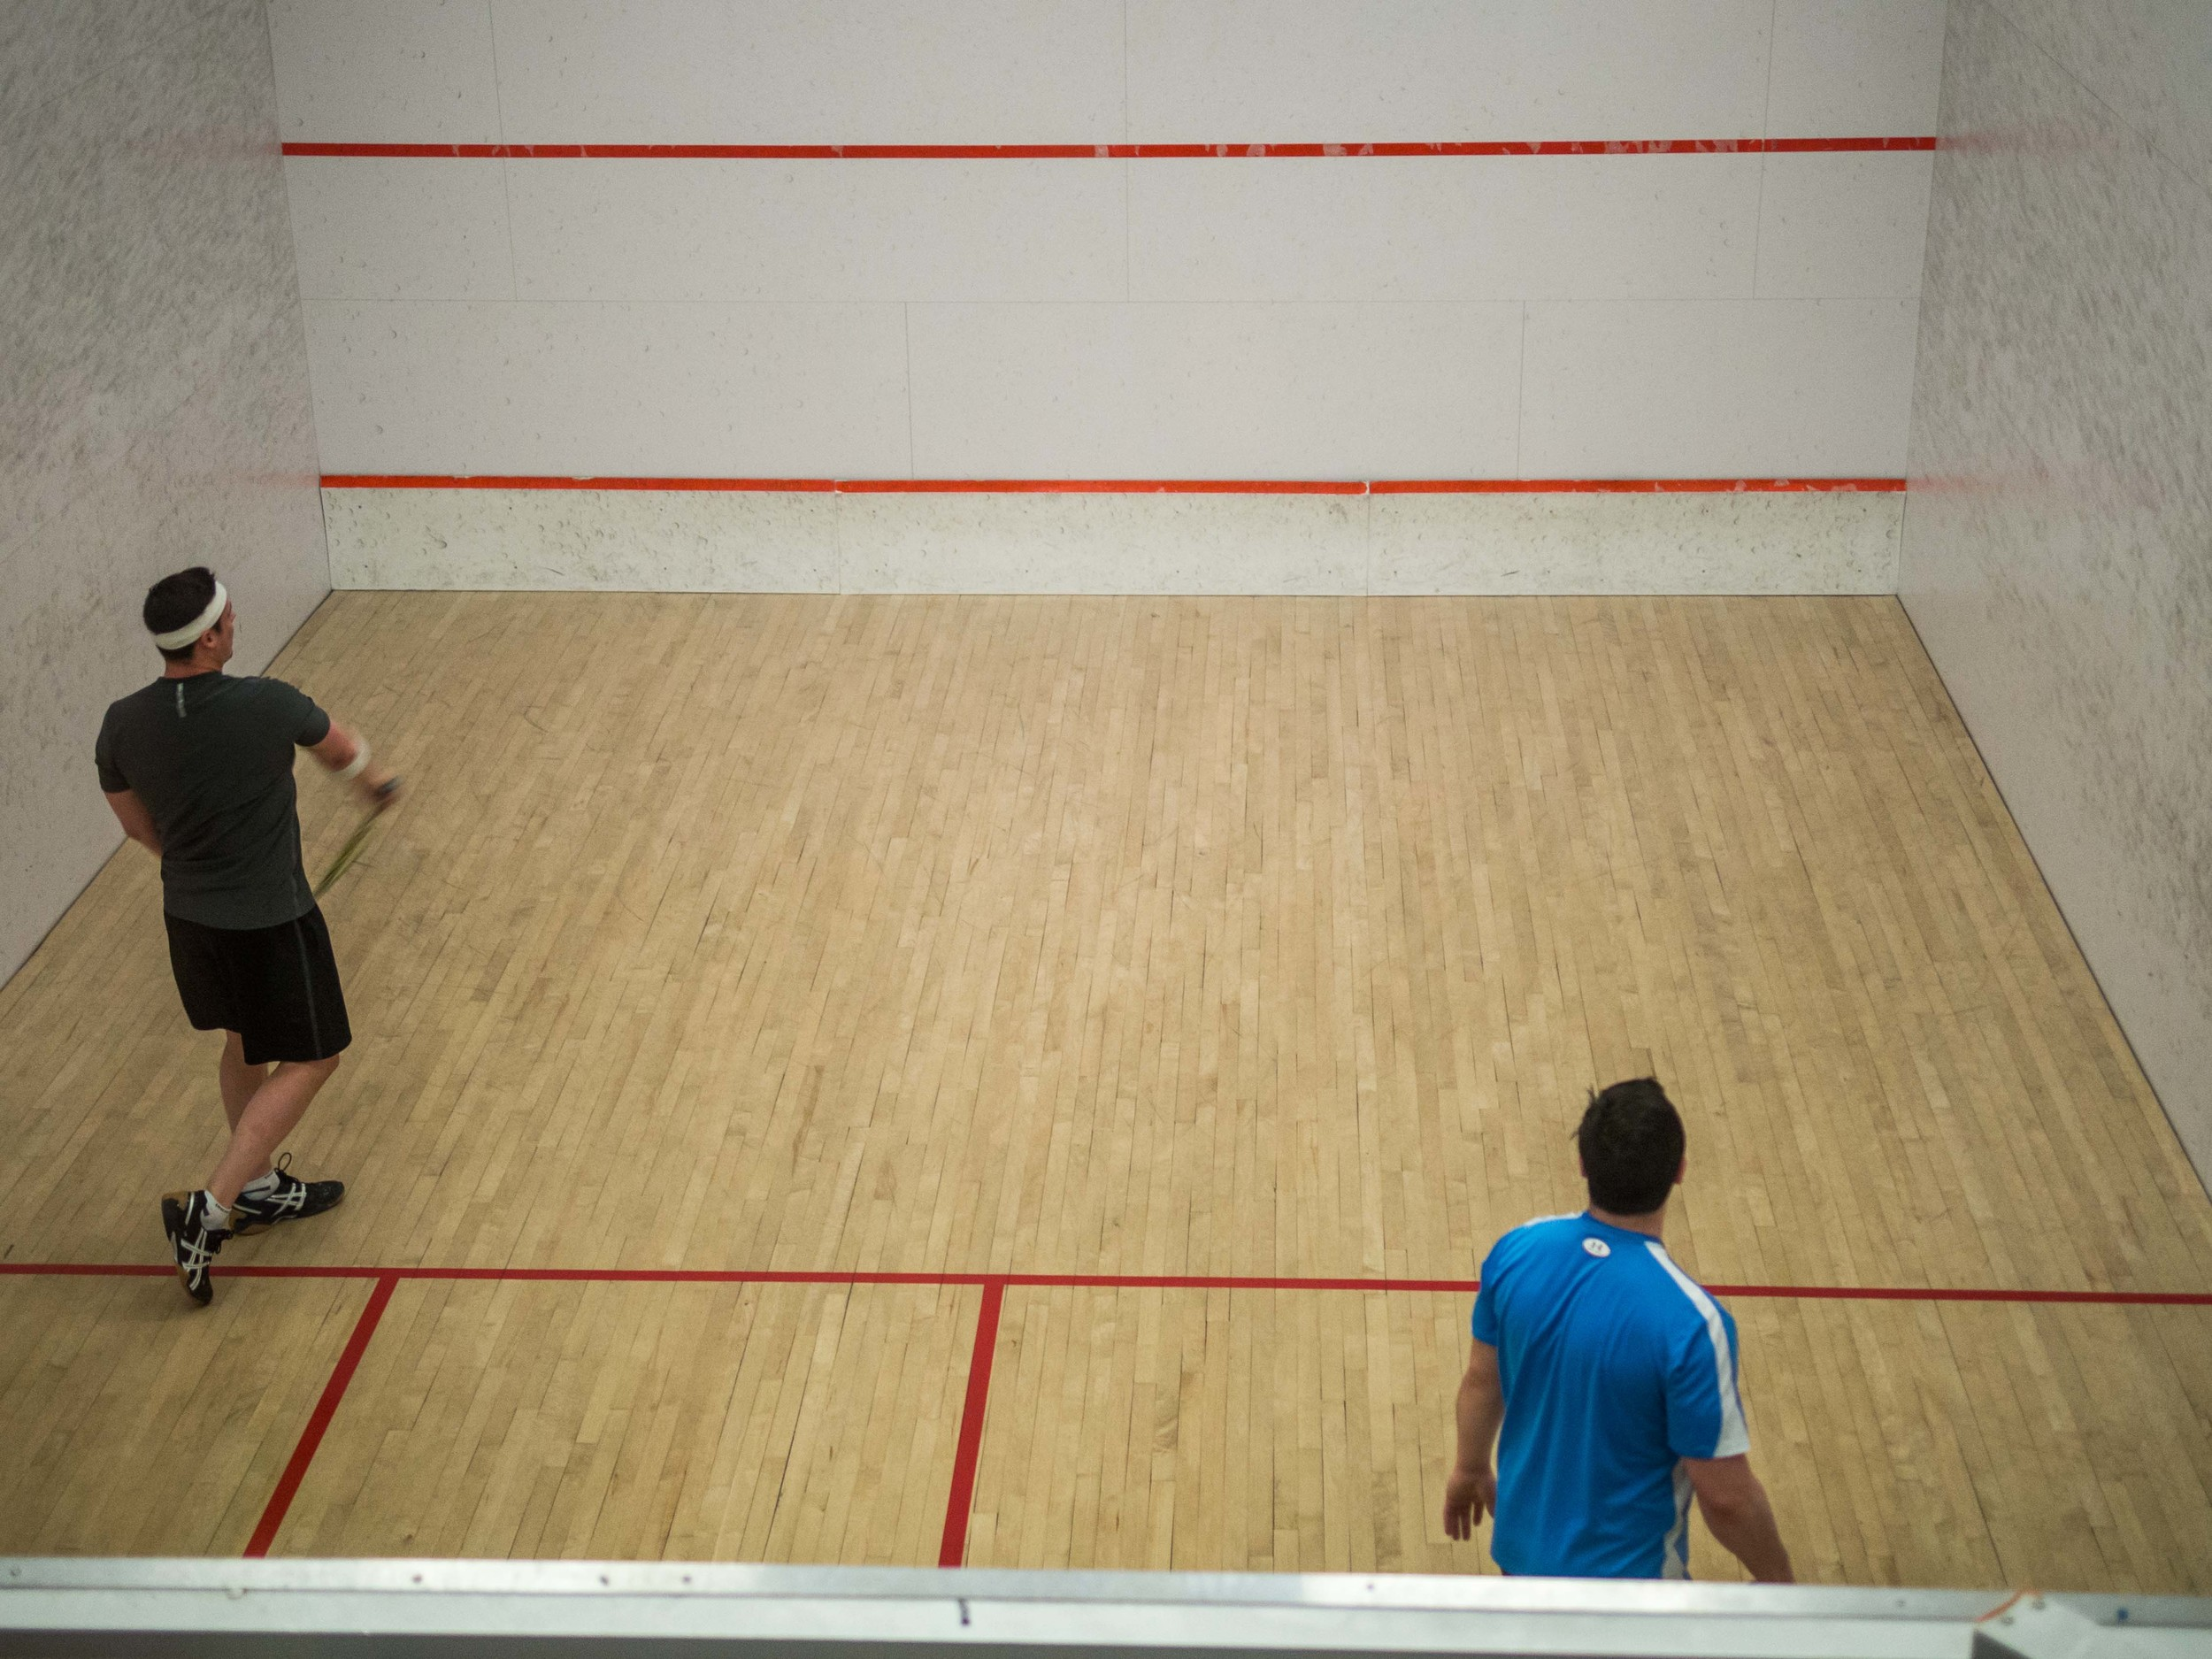 Ongoing squash match in one of the squash courts.